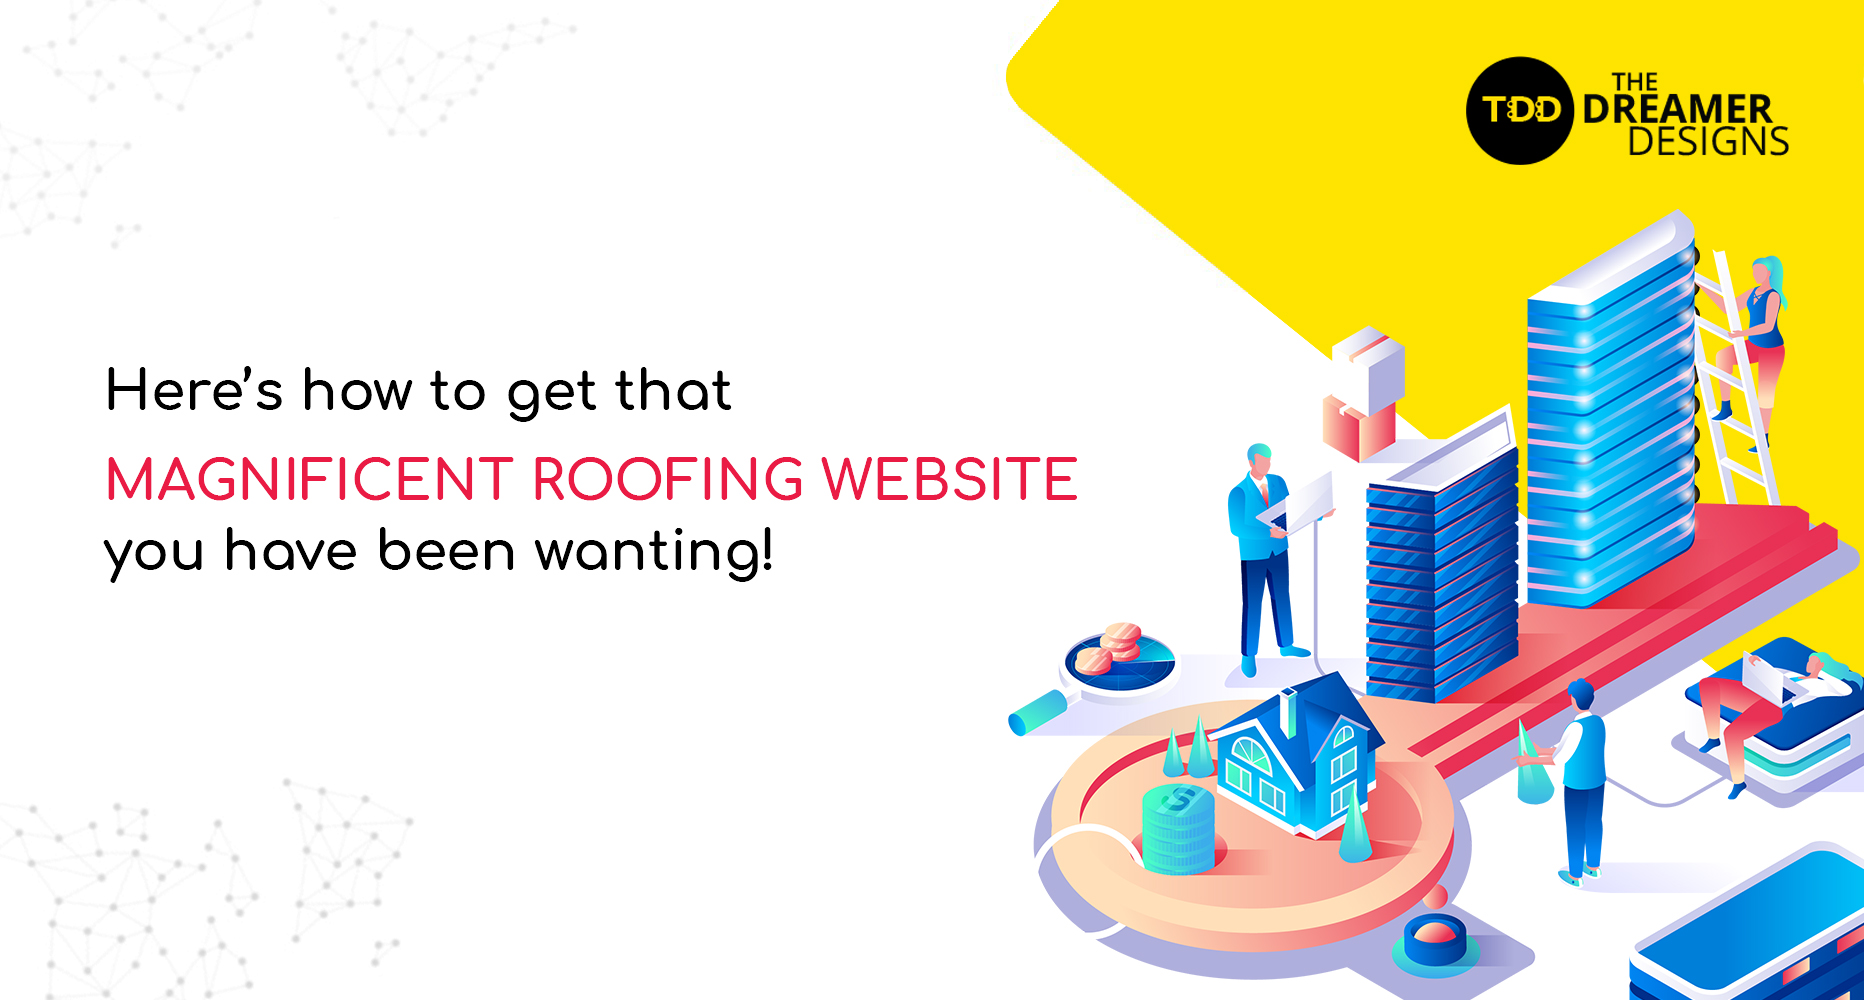 Here's how to get that magnificent roofing website you have been wanting all this while